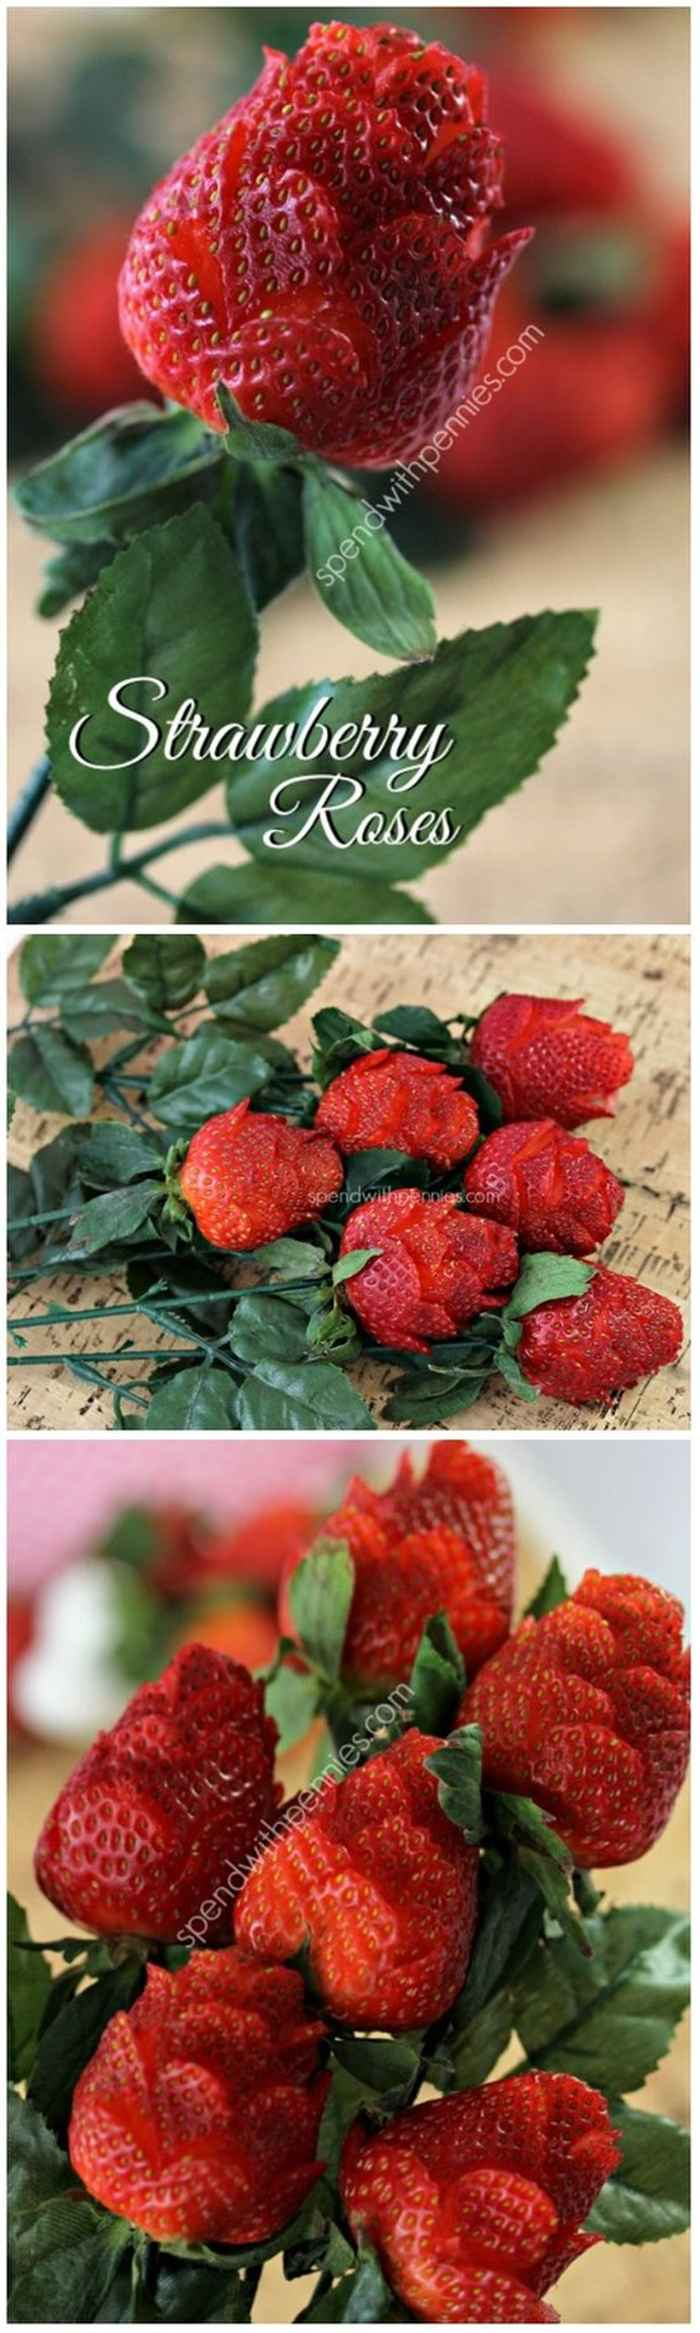 Strawberry Roses Carving Ideas